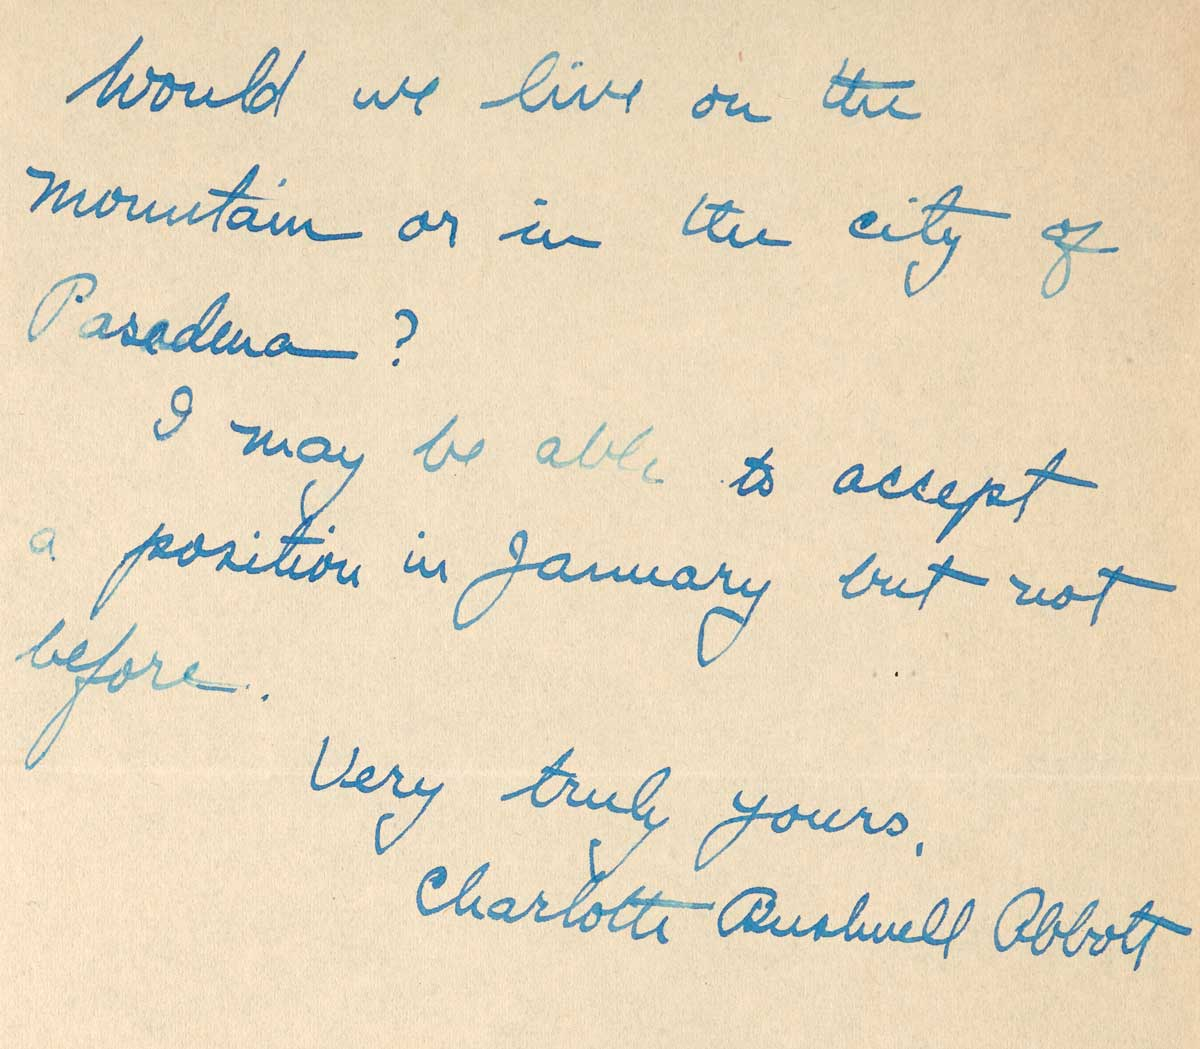 Letter to F.H. Seares of Mt. Wilson observatory from Charlotte Abbott p2 | Image courtesy of the Observatories of the Carnegie Institution for Science Collection at the Huntington Library, San Marino, California